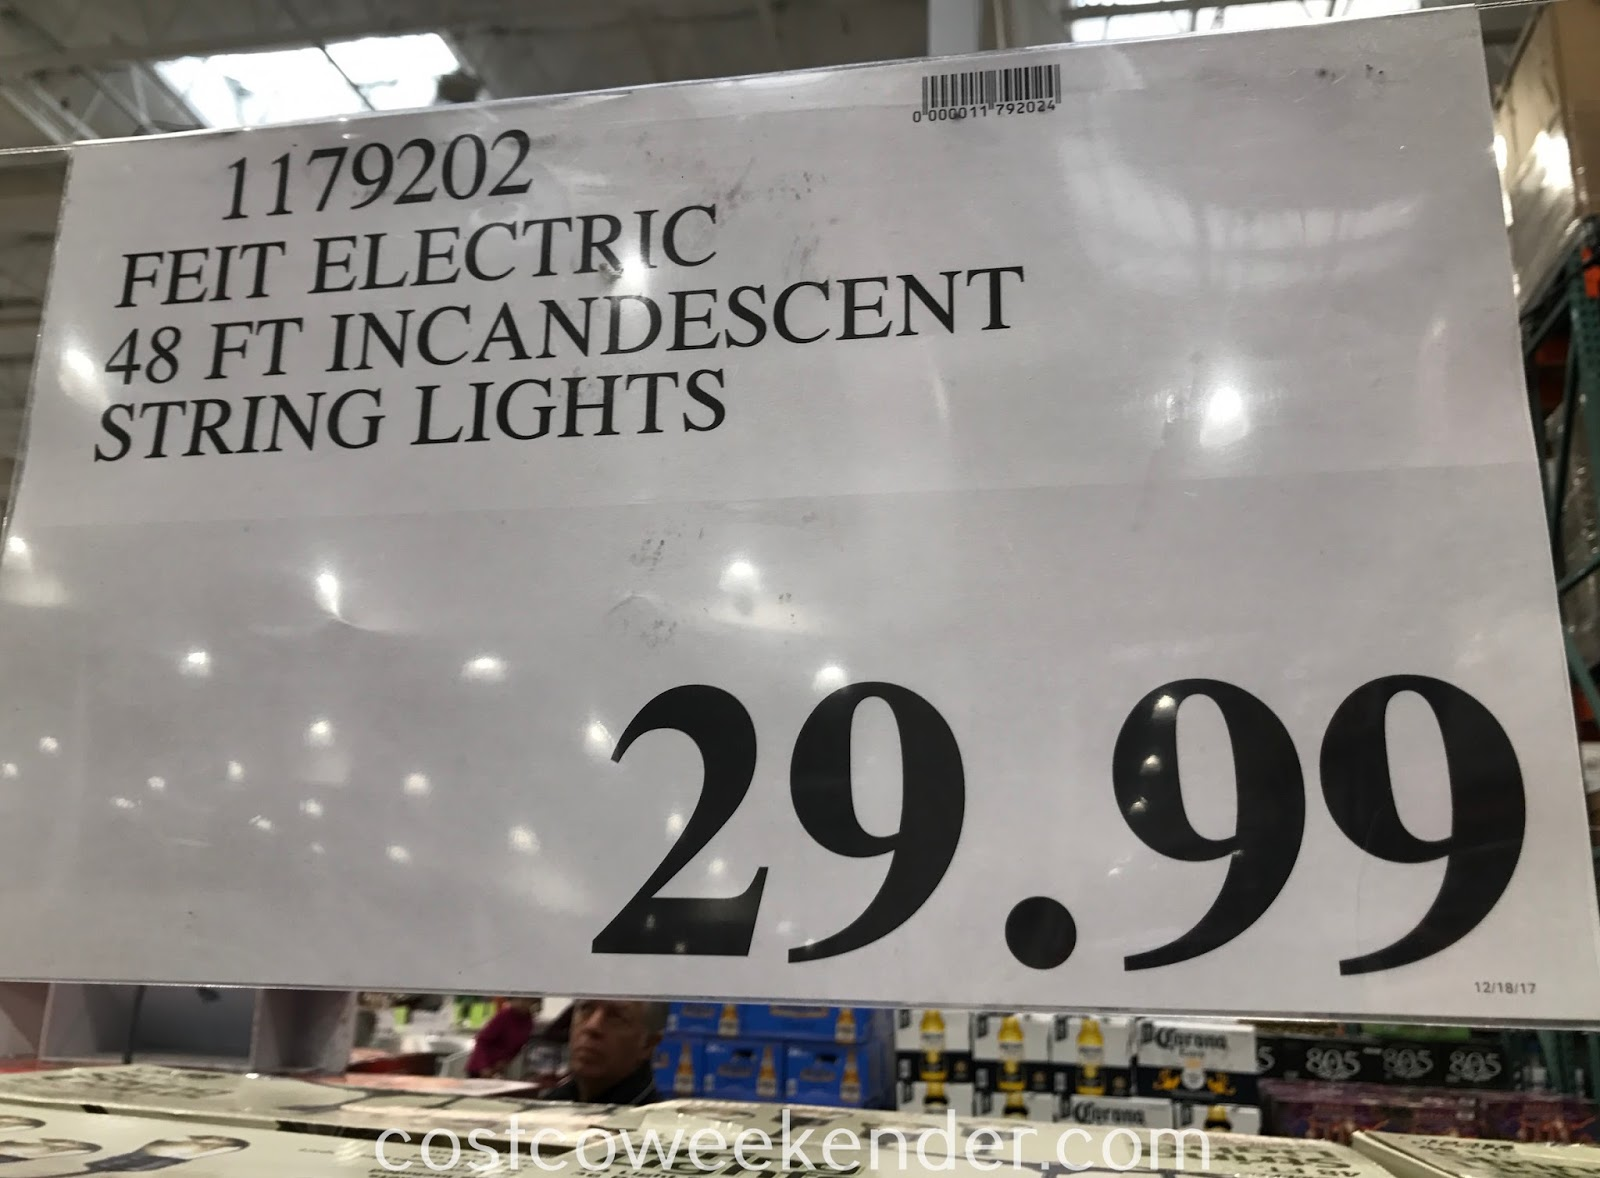 Deal for the Feit Electric 48ft Incandescent String Lights (Model No. 72115) at Costco